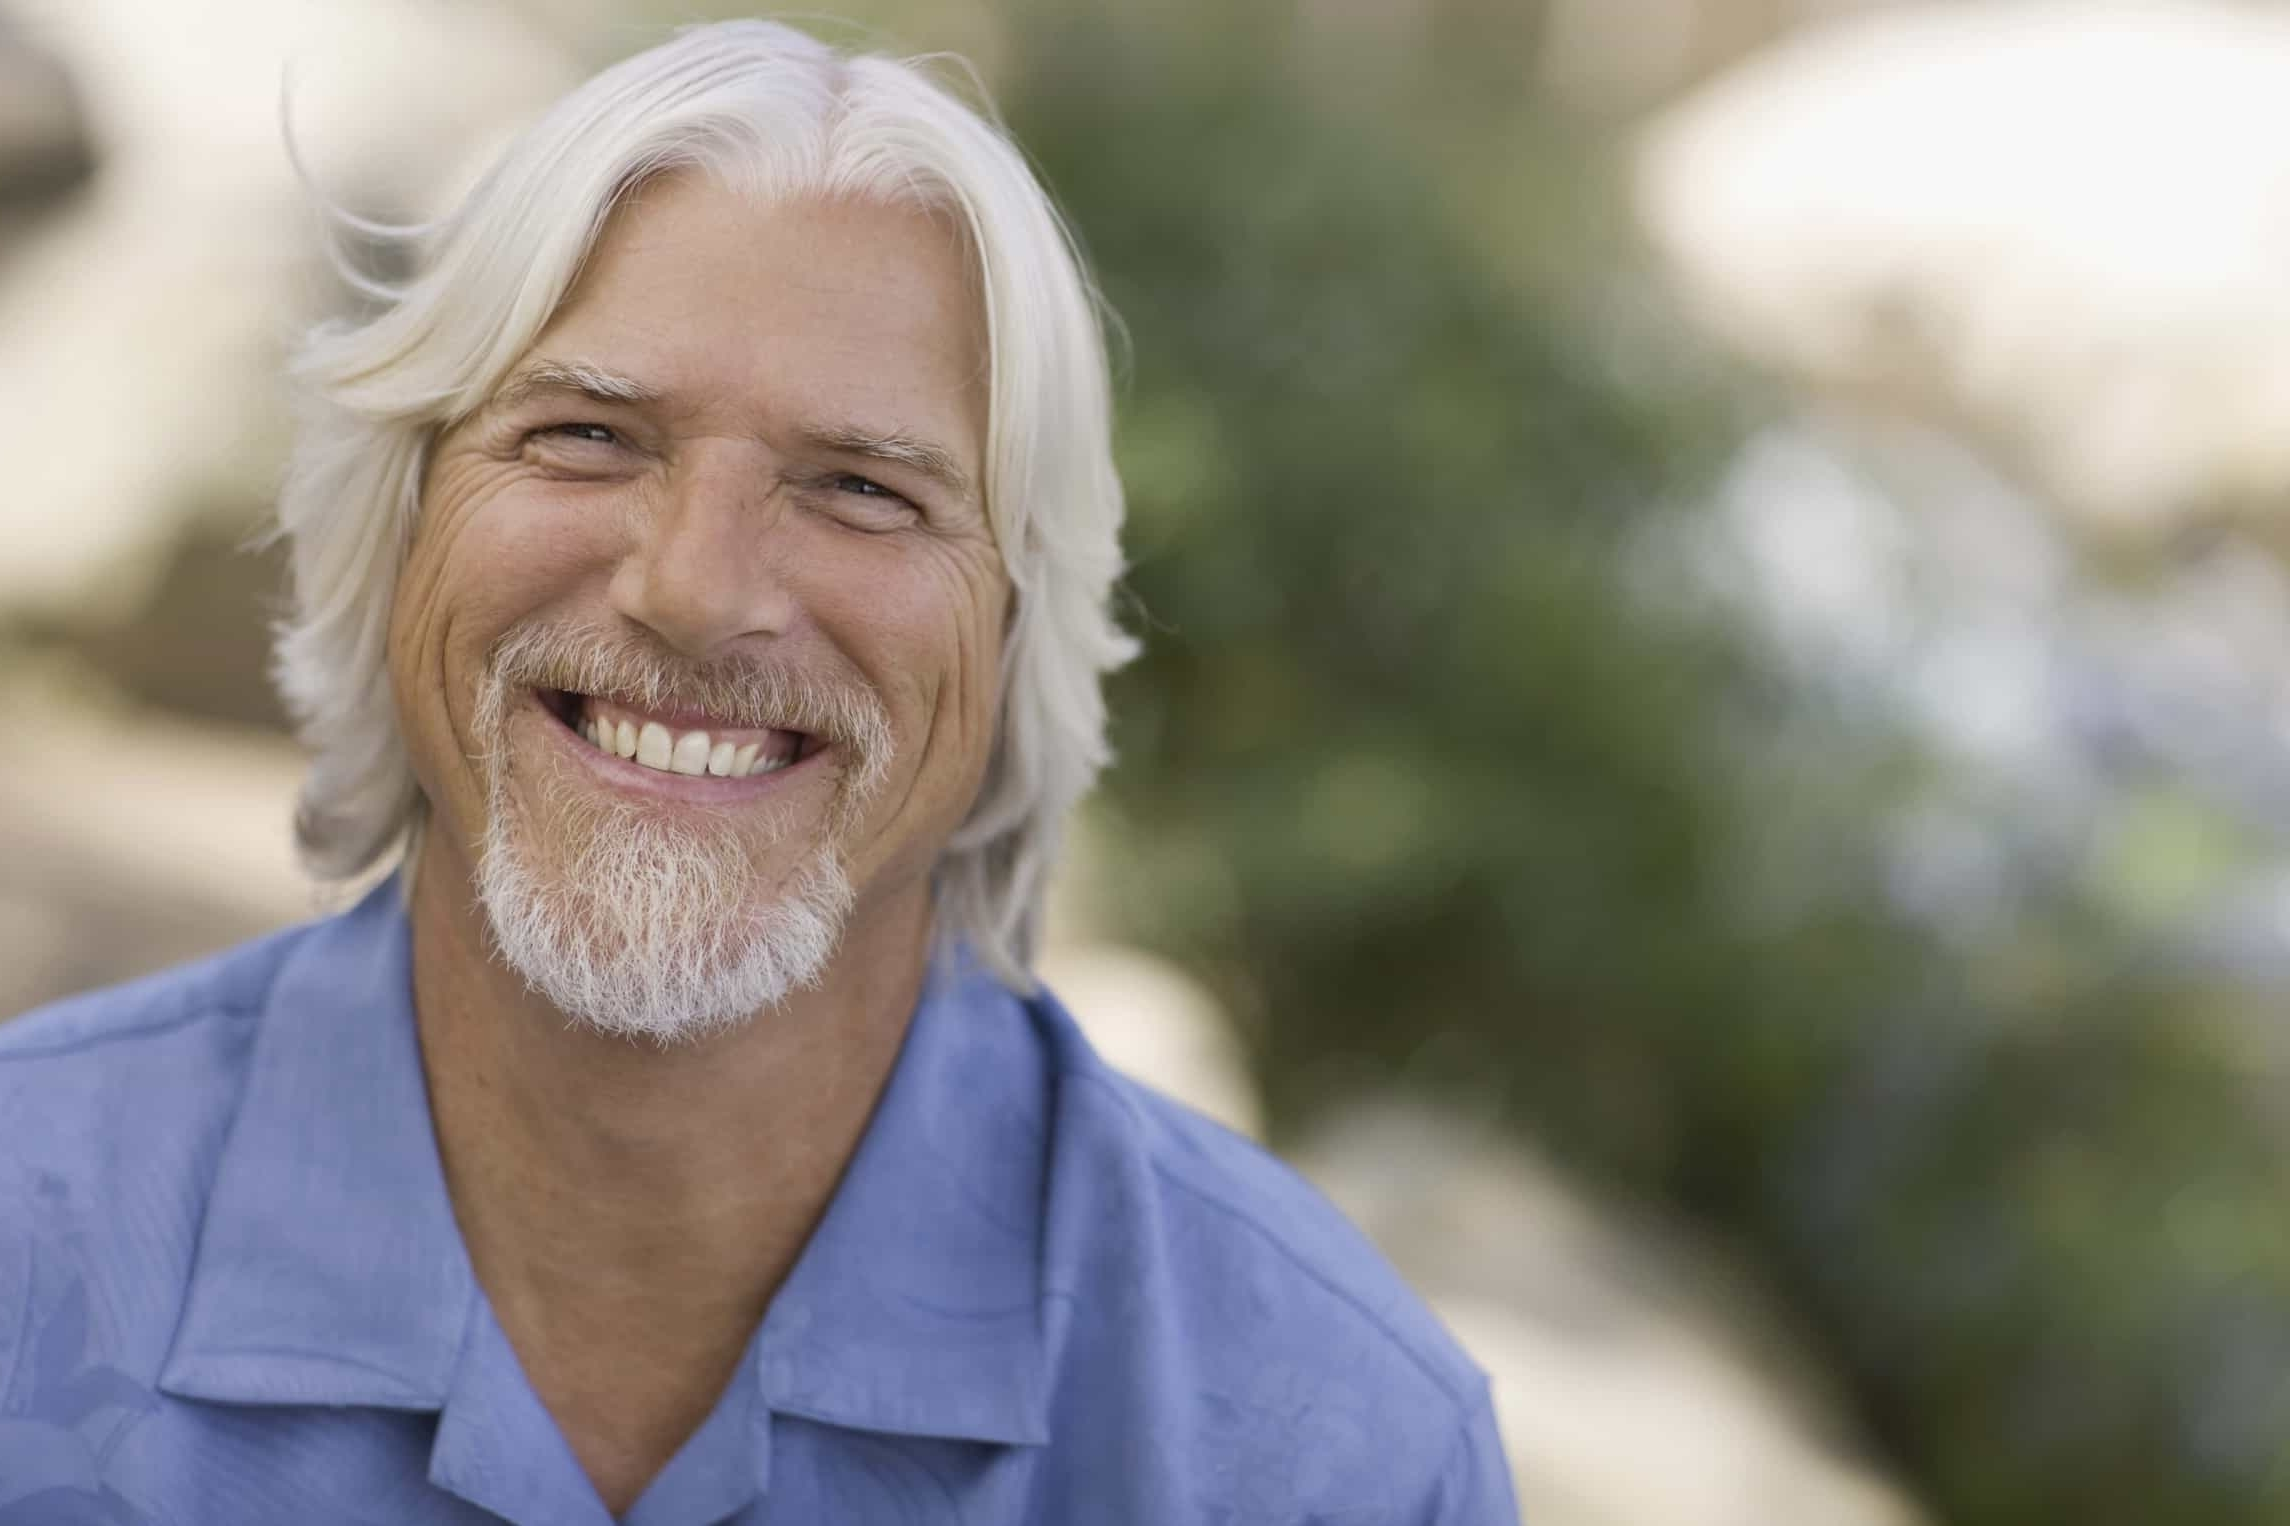 35+ Classy Older Men Hairstyles To Rejuvenate Youth (2021 20+ Adorable Medium Length Long Hairstyles For Older Men